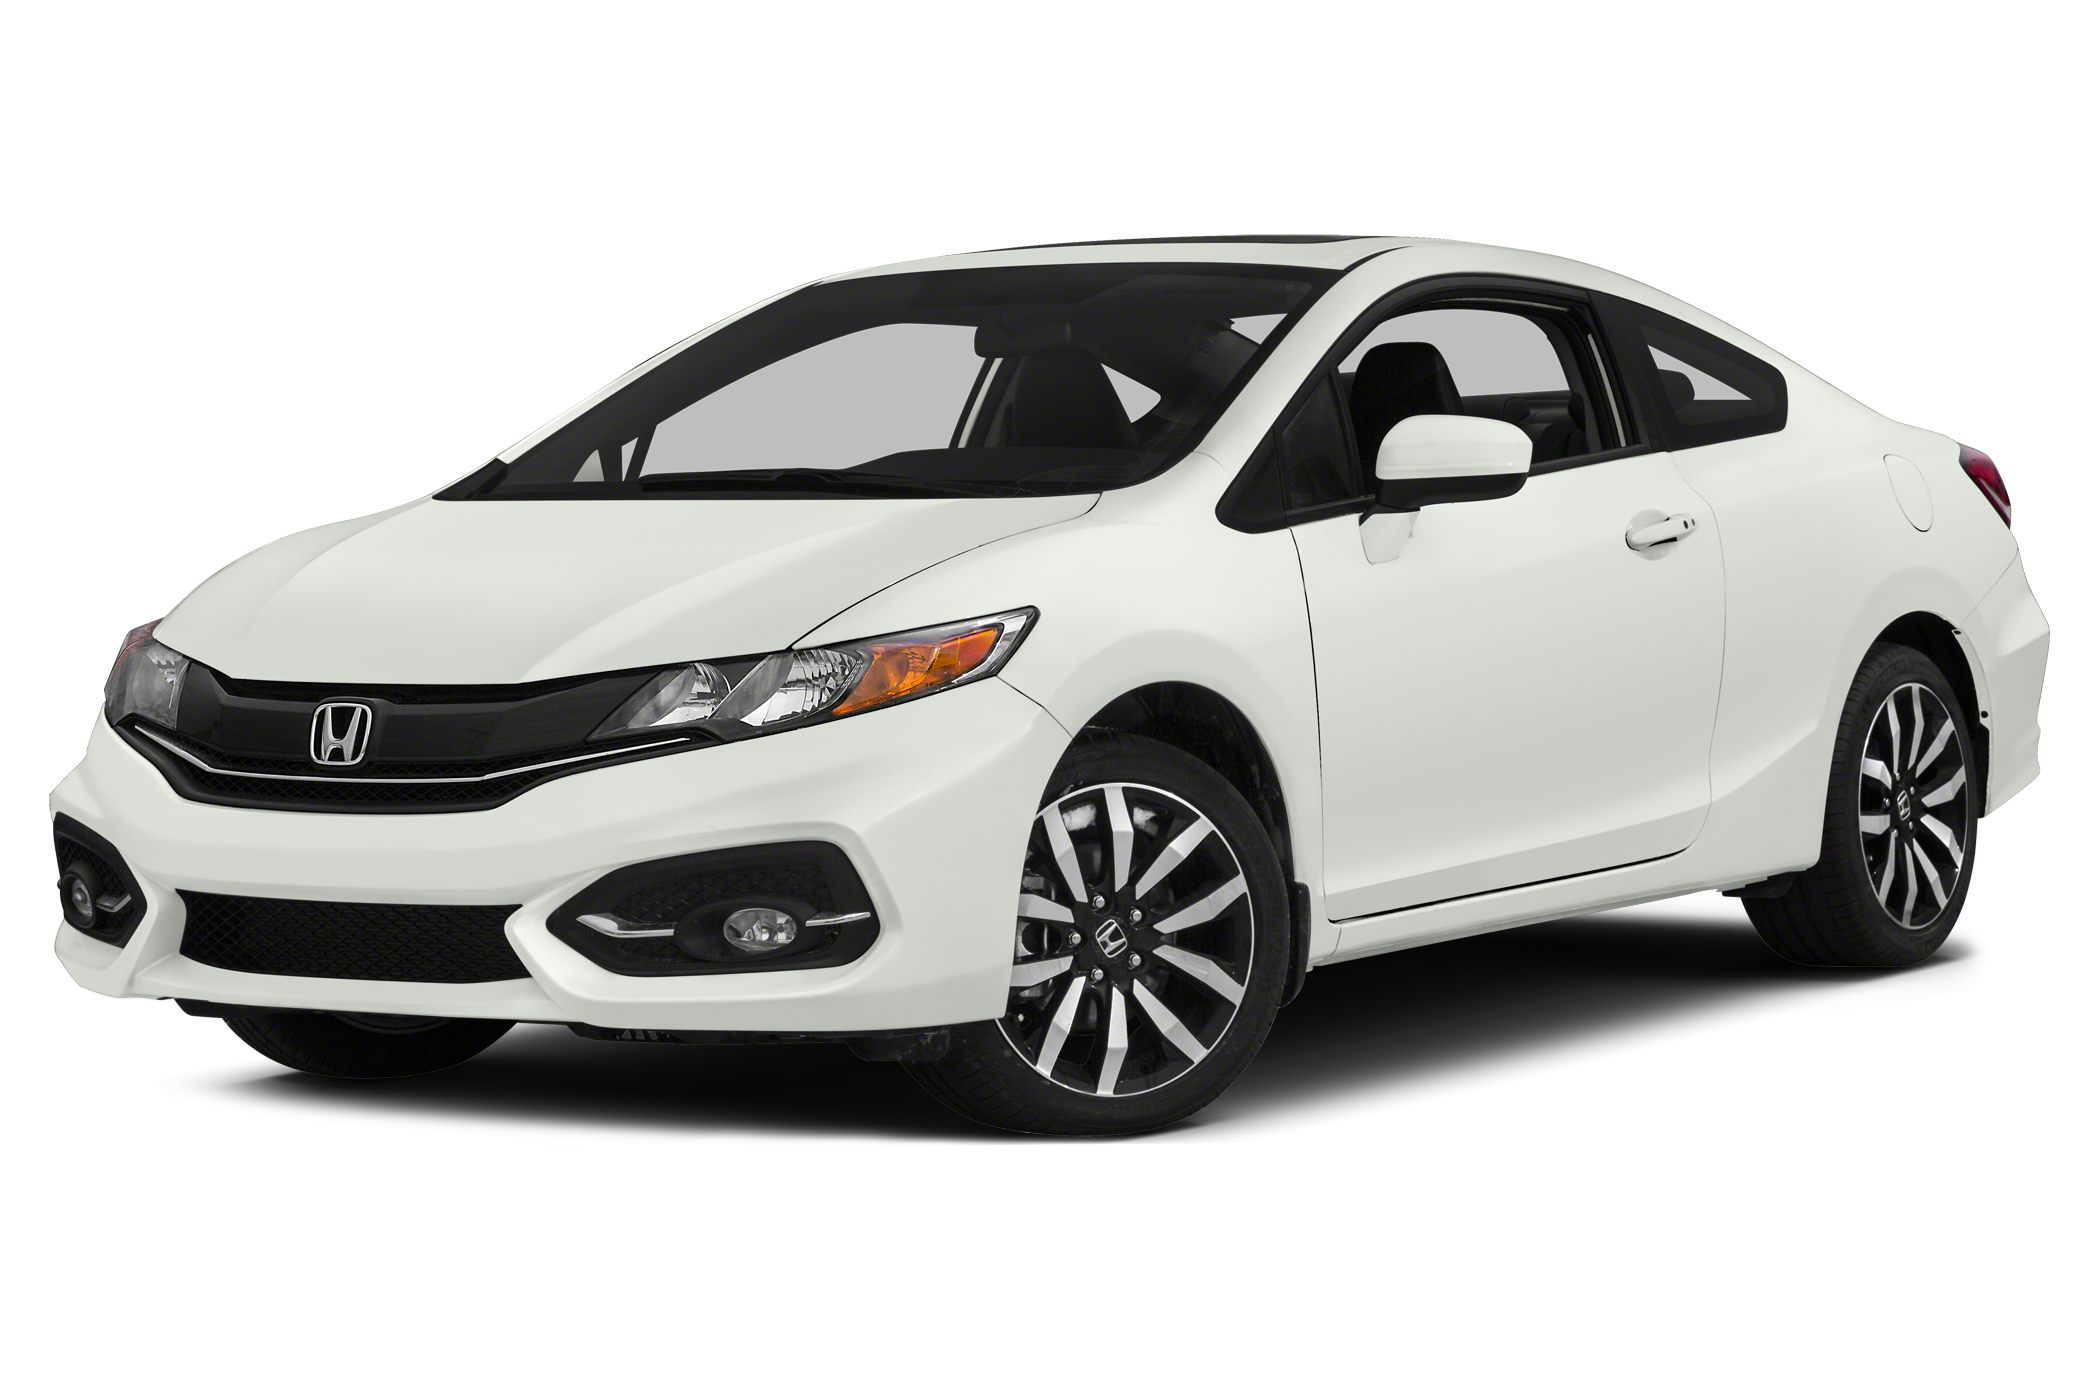 2015 Honda Civic EX-L Sedan for sale in Birmingham for $25,160 with 13 miles.